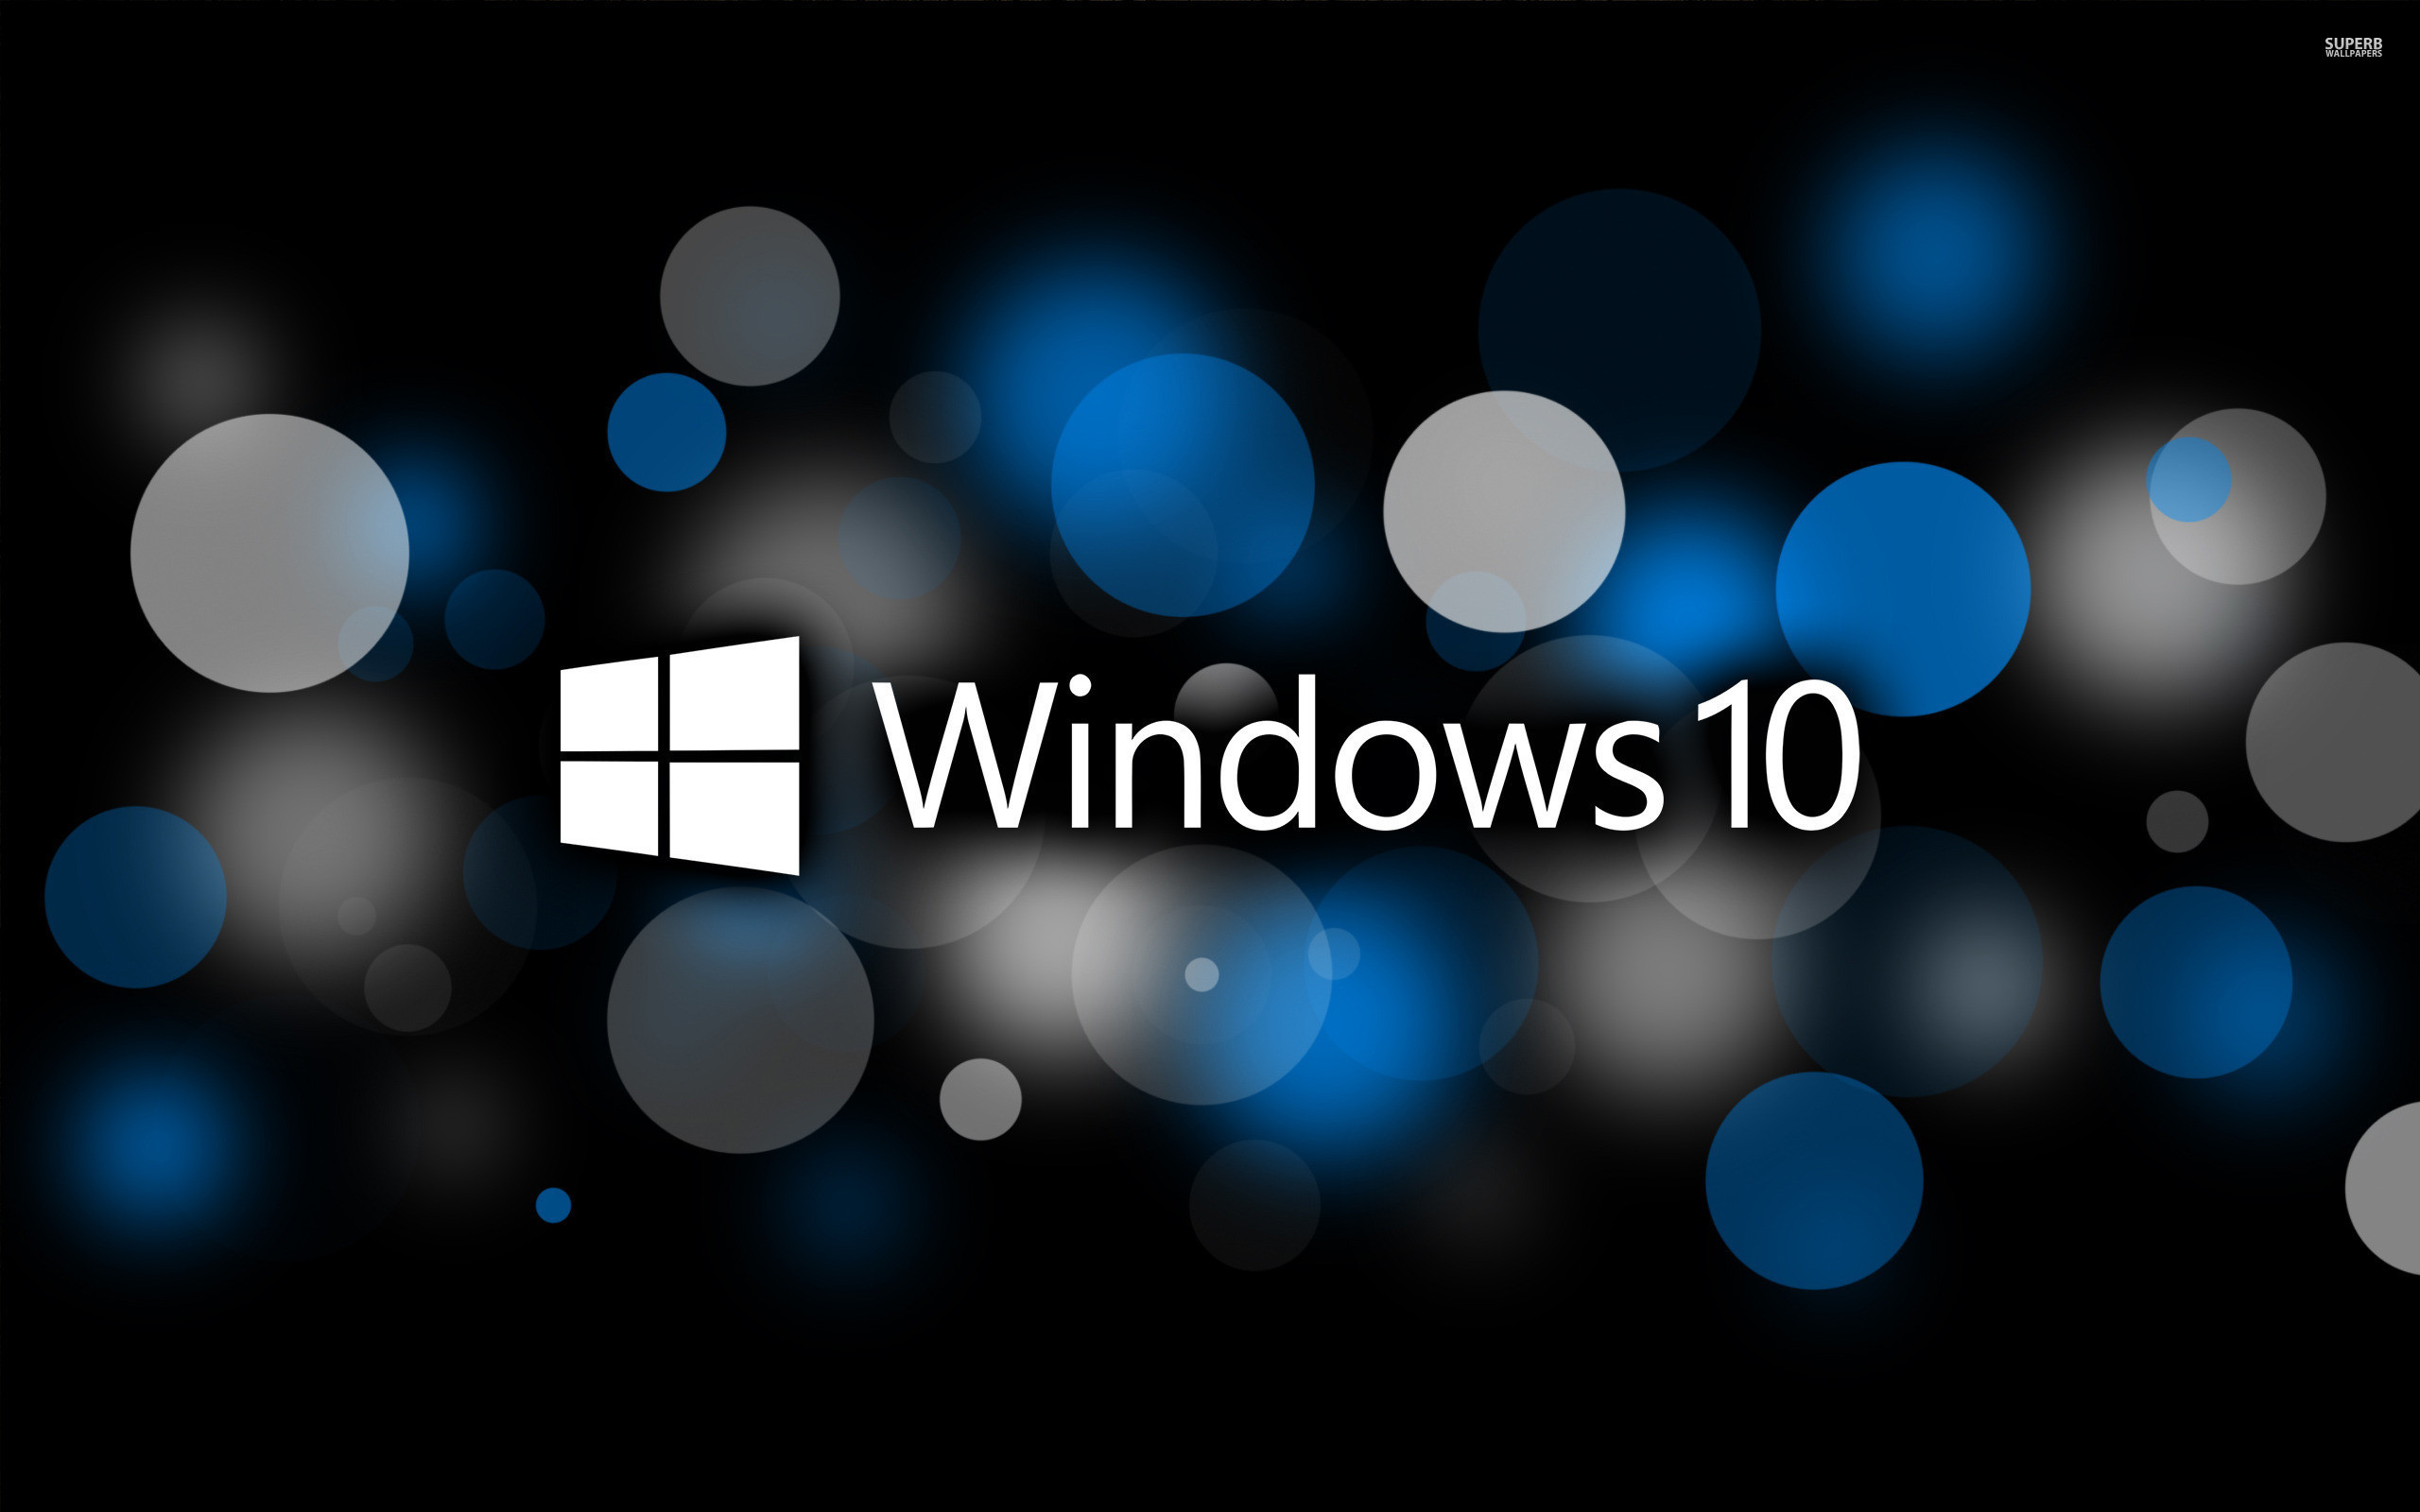 wallpaper windows 10 hd